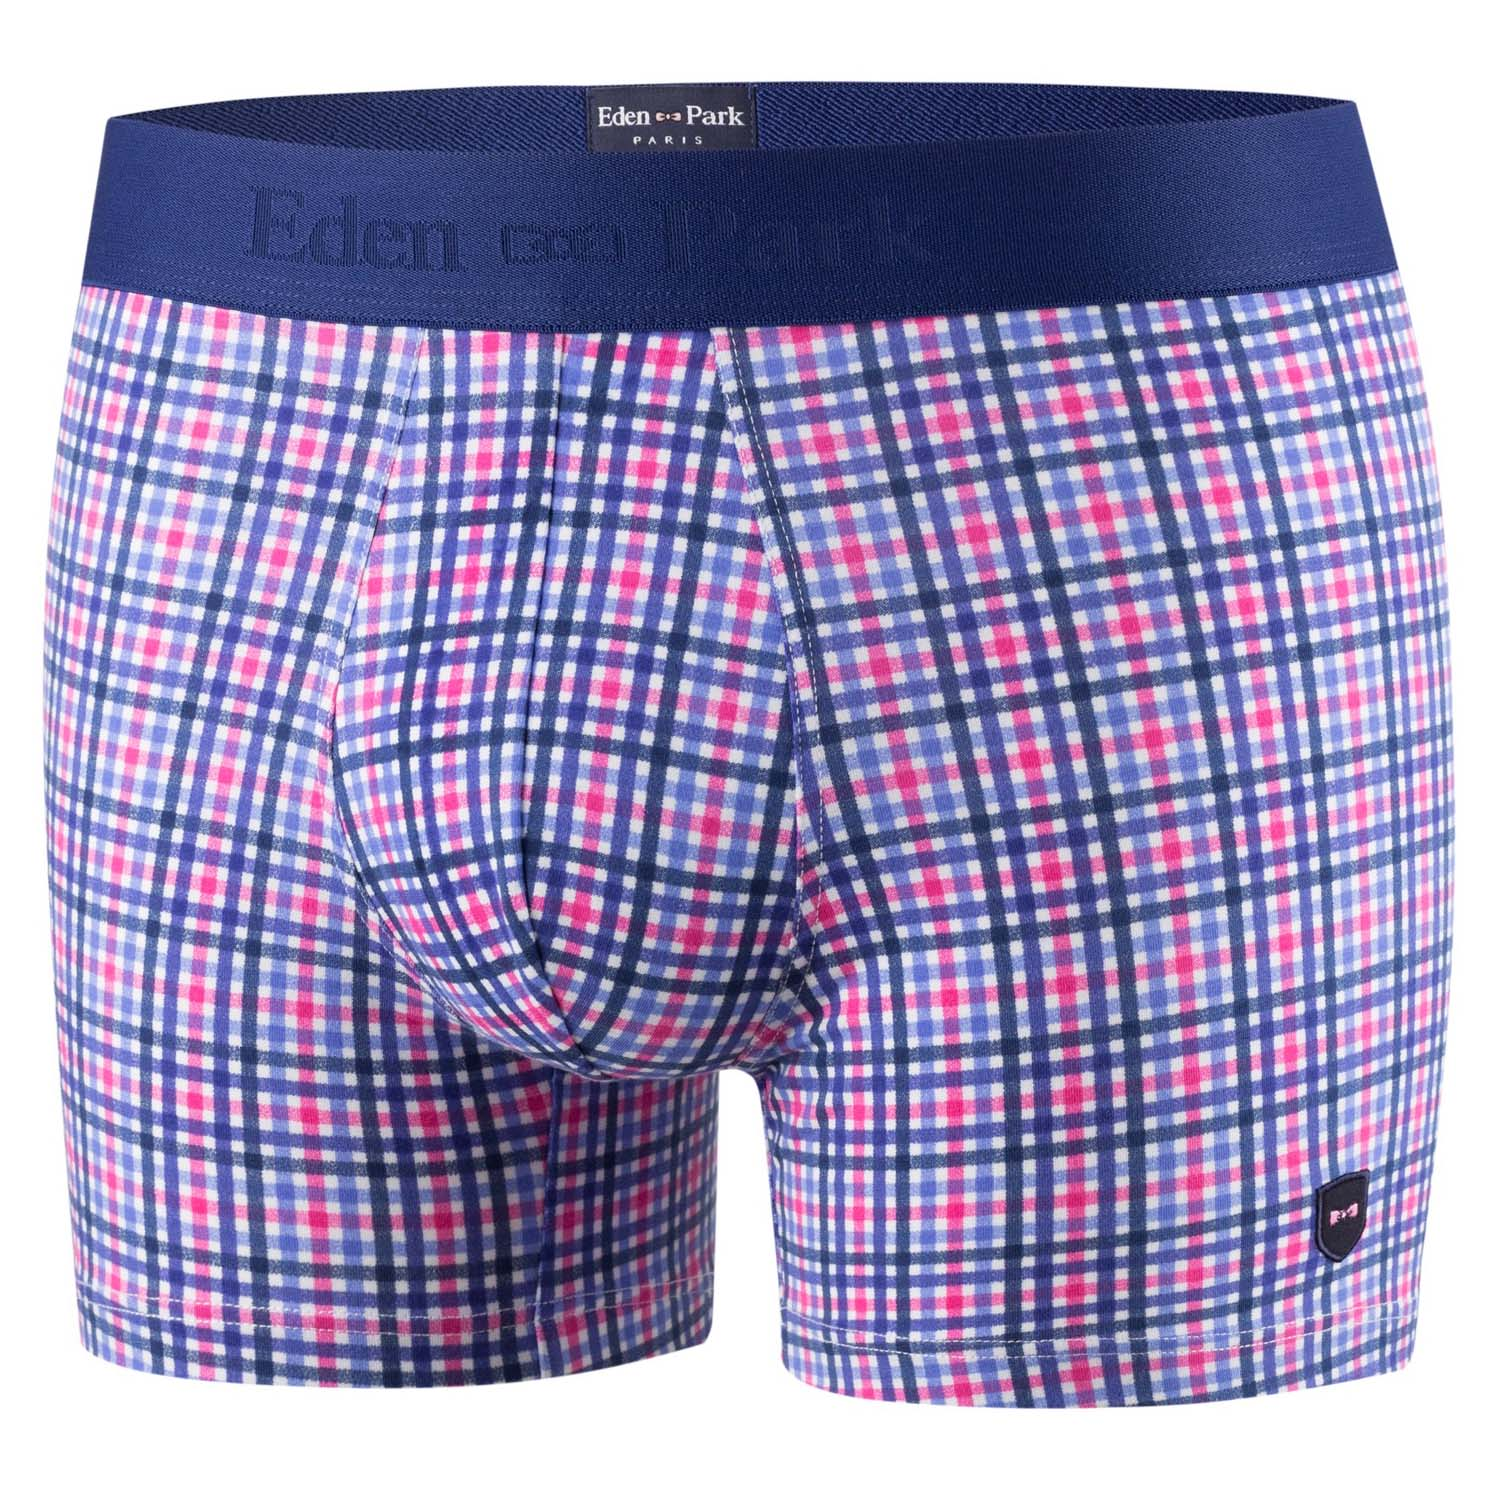 Boxer Brief Eden Park E644E47